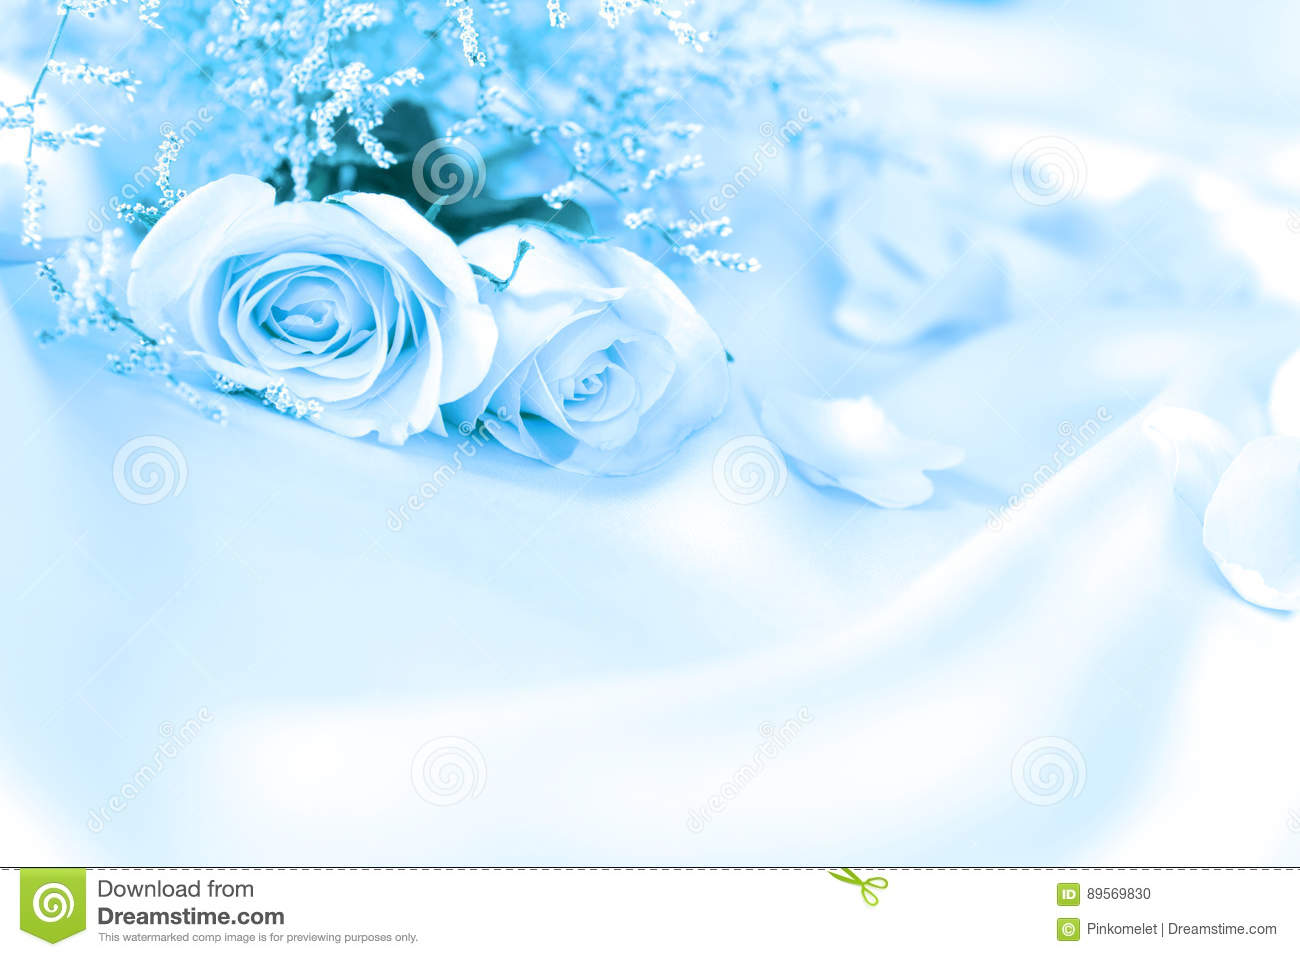 Sweet Rose Flowers For Love Romance Or Wedding Background Stock Photo Image Of Blossom Macro 89569830